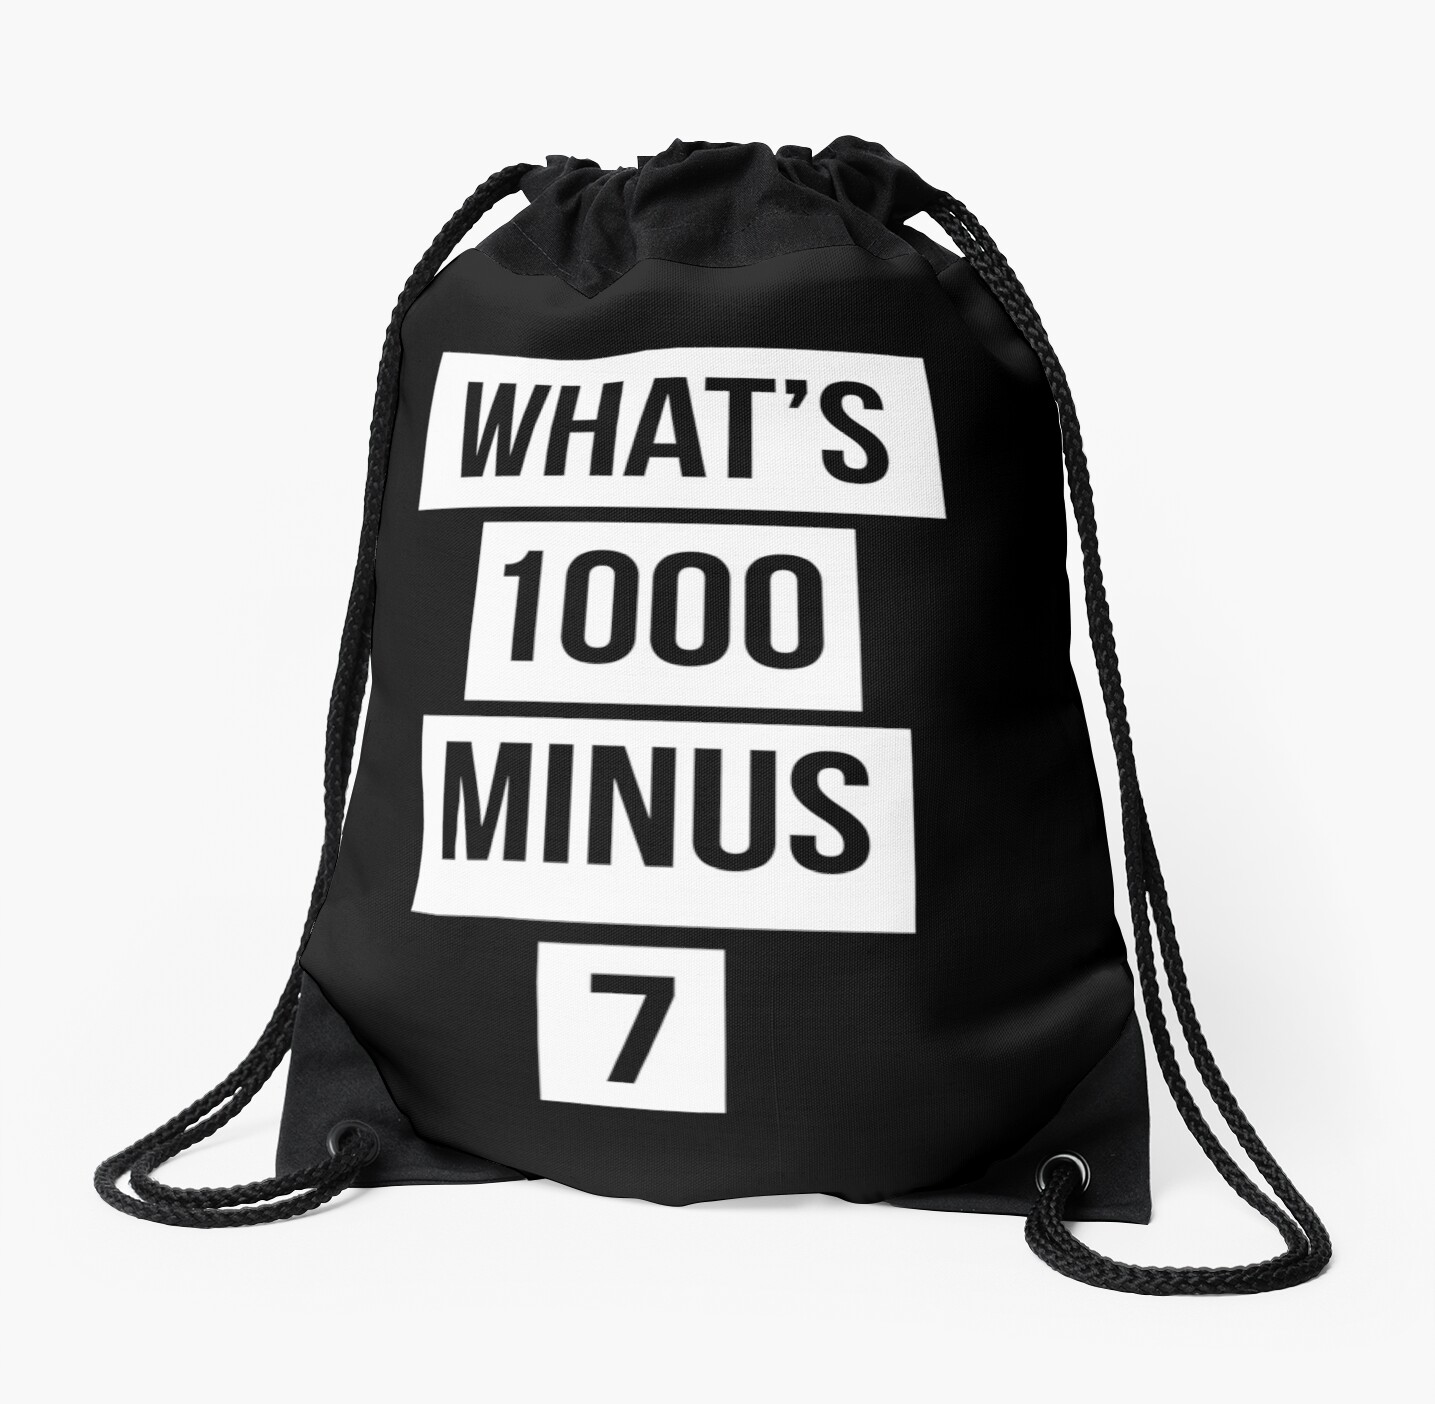 ysl messenger bag black - what\u0026#39;s 1000 minus 7?\u0026quot; Drawstring Bags by Vivian Yeong | Redbubble